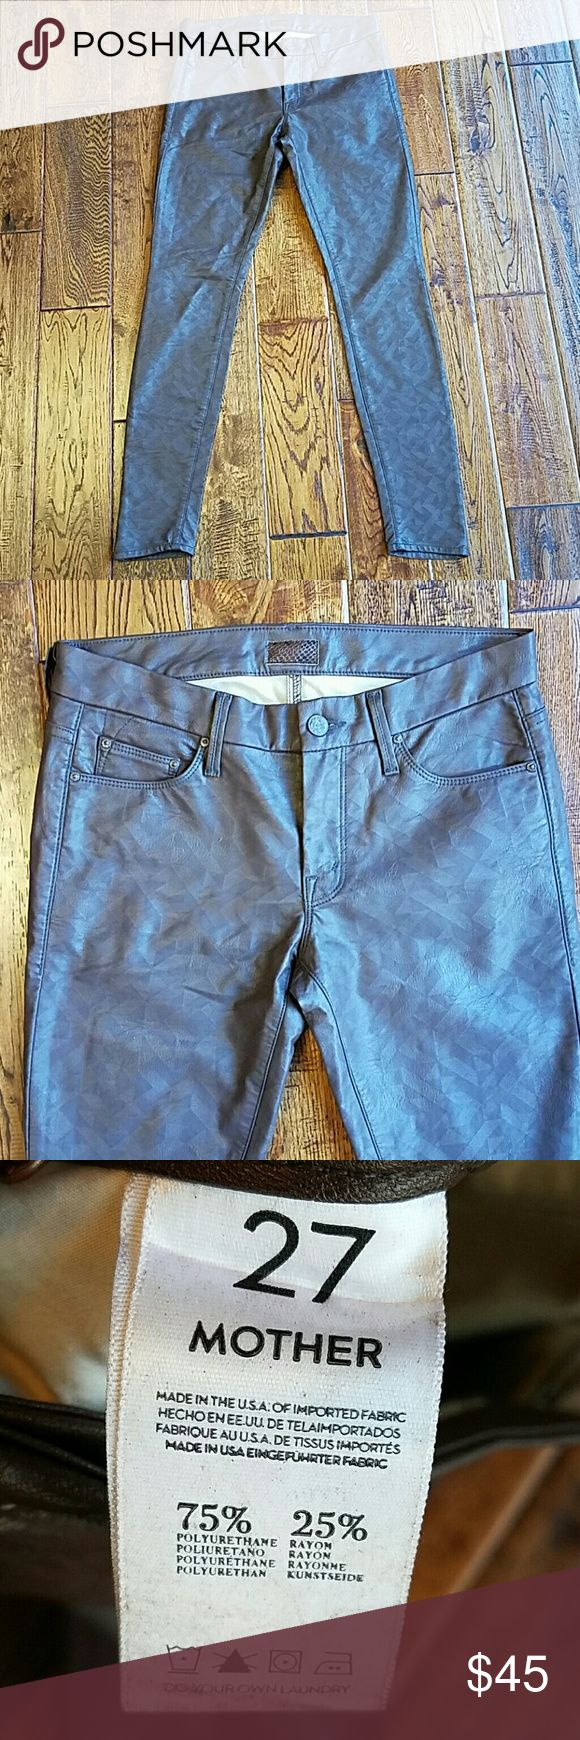 MOTHER coated jeans Great condition MOTHER Jeans